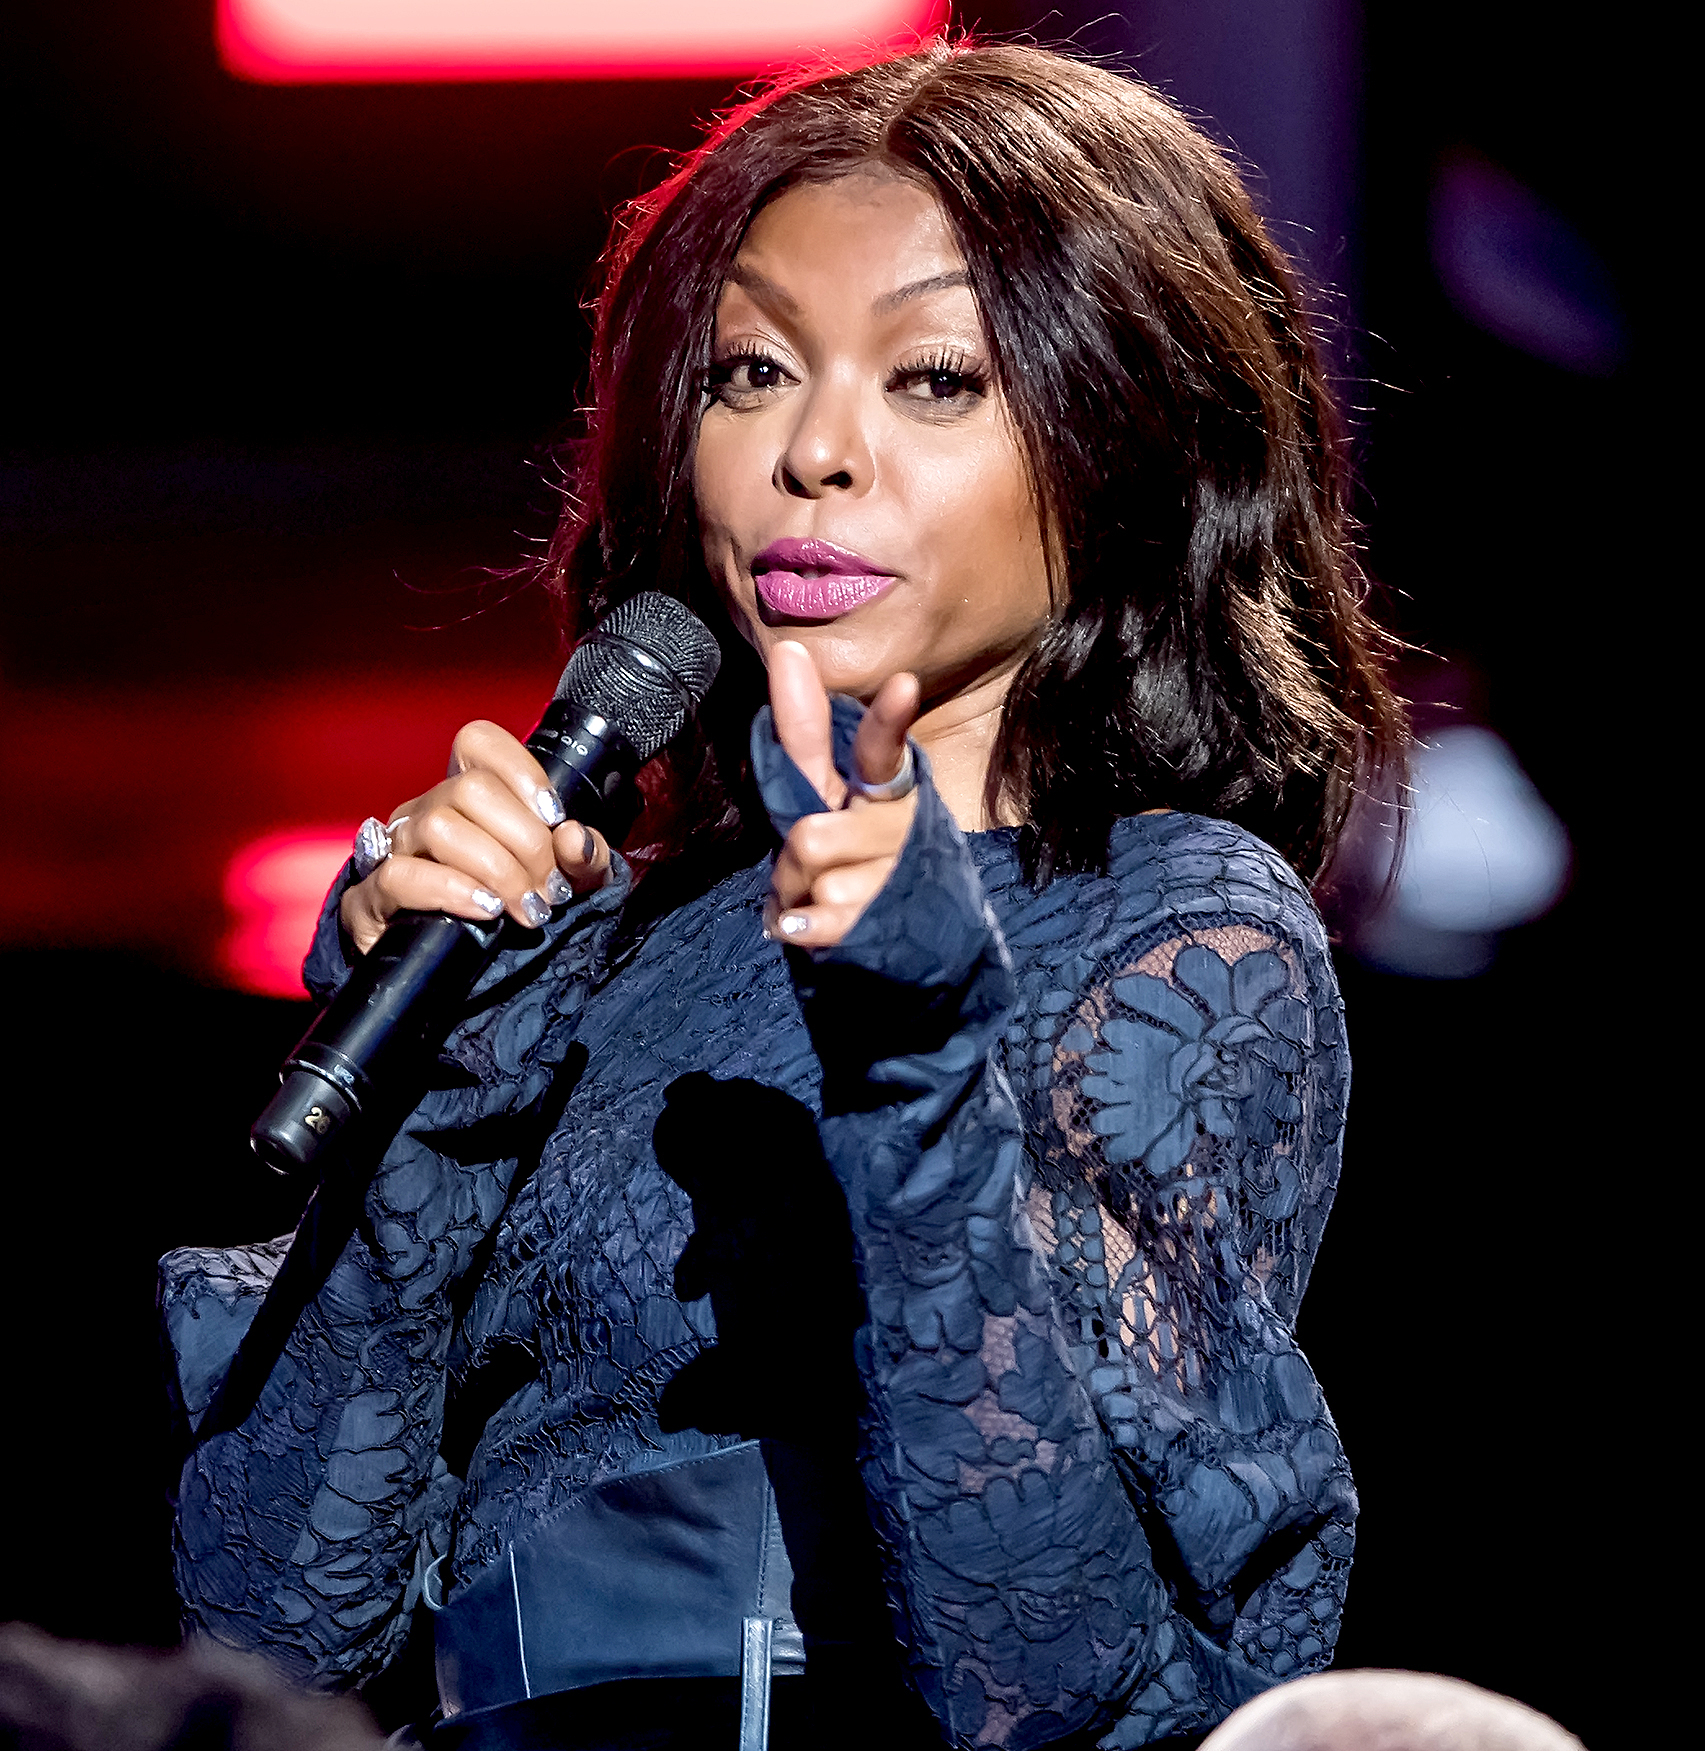 Taraji P. Henson speaks onstage during Black Girls Rock! 2017 at New Jersey Performing Arts Center on August 5, 2017 in Newark, New Jersey.